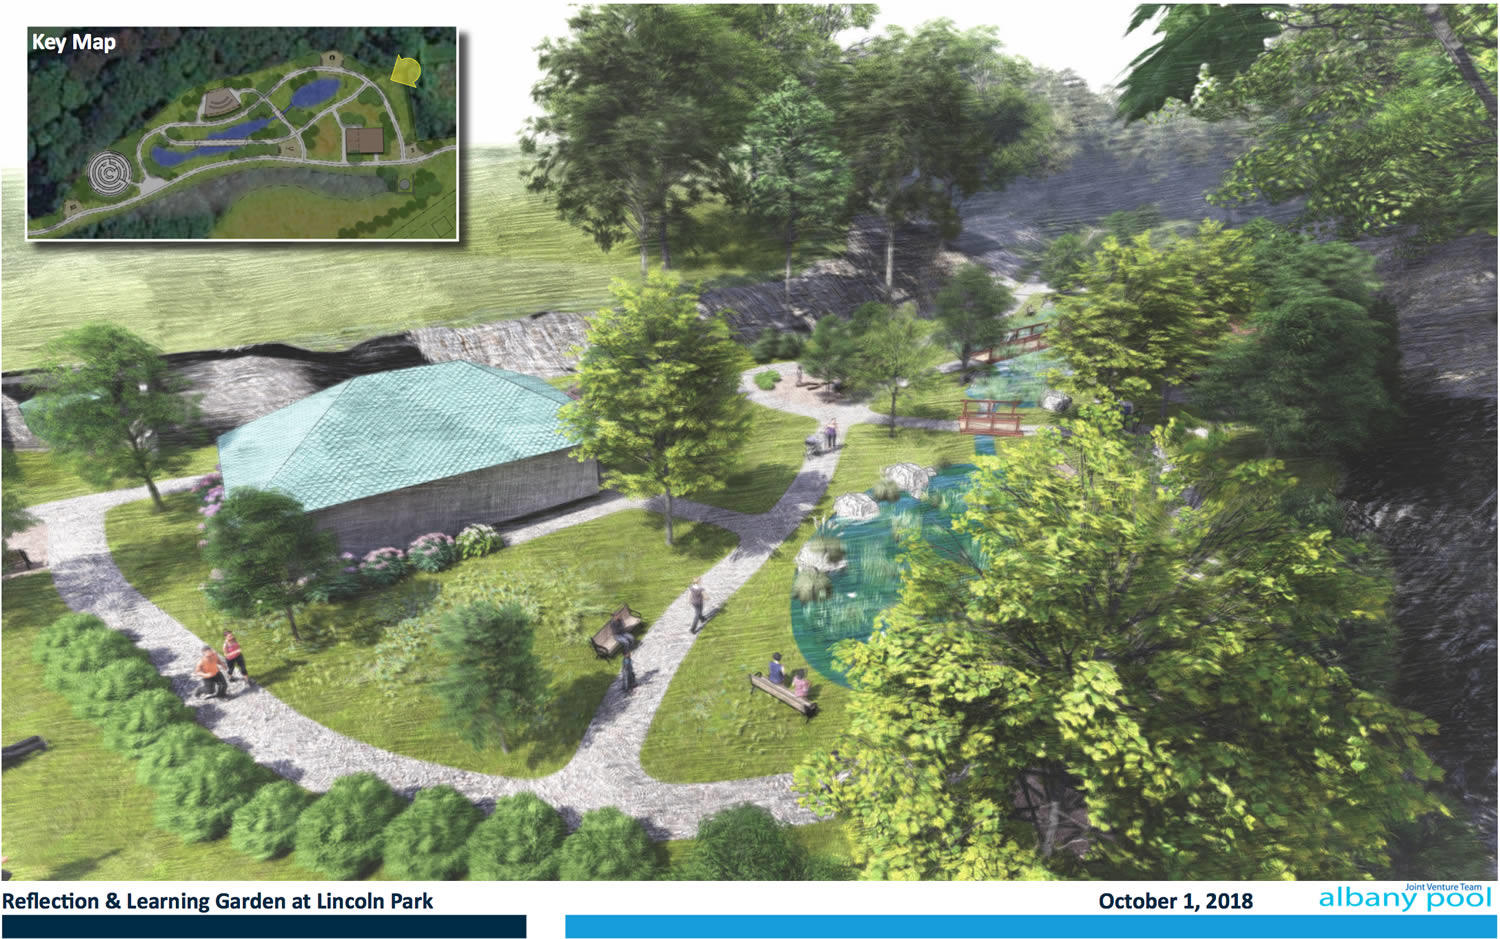 Lincoln_Park_Beaver_Creek_Clean_River_garden_proposals_2018-October__reflection_and_learning_garden.jpg